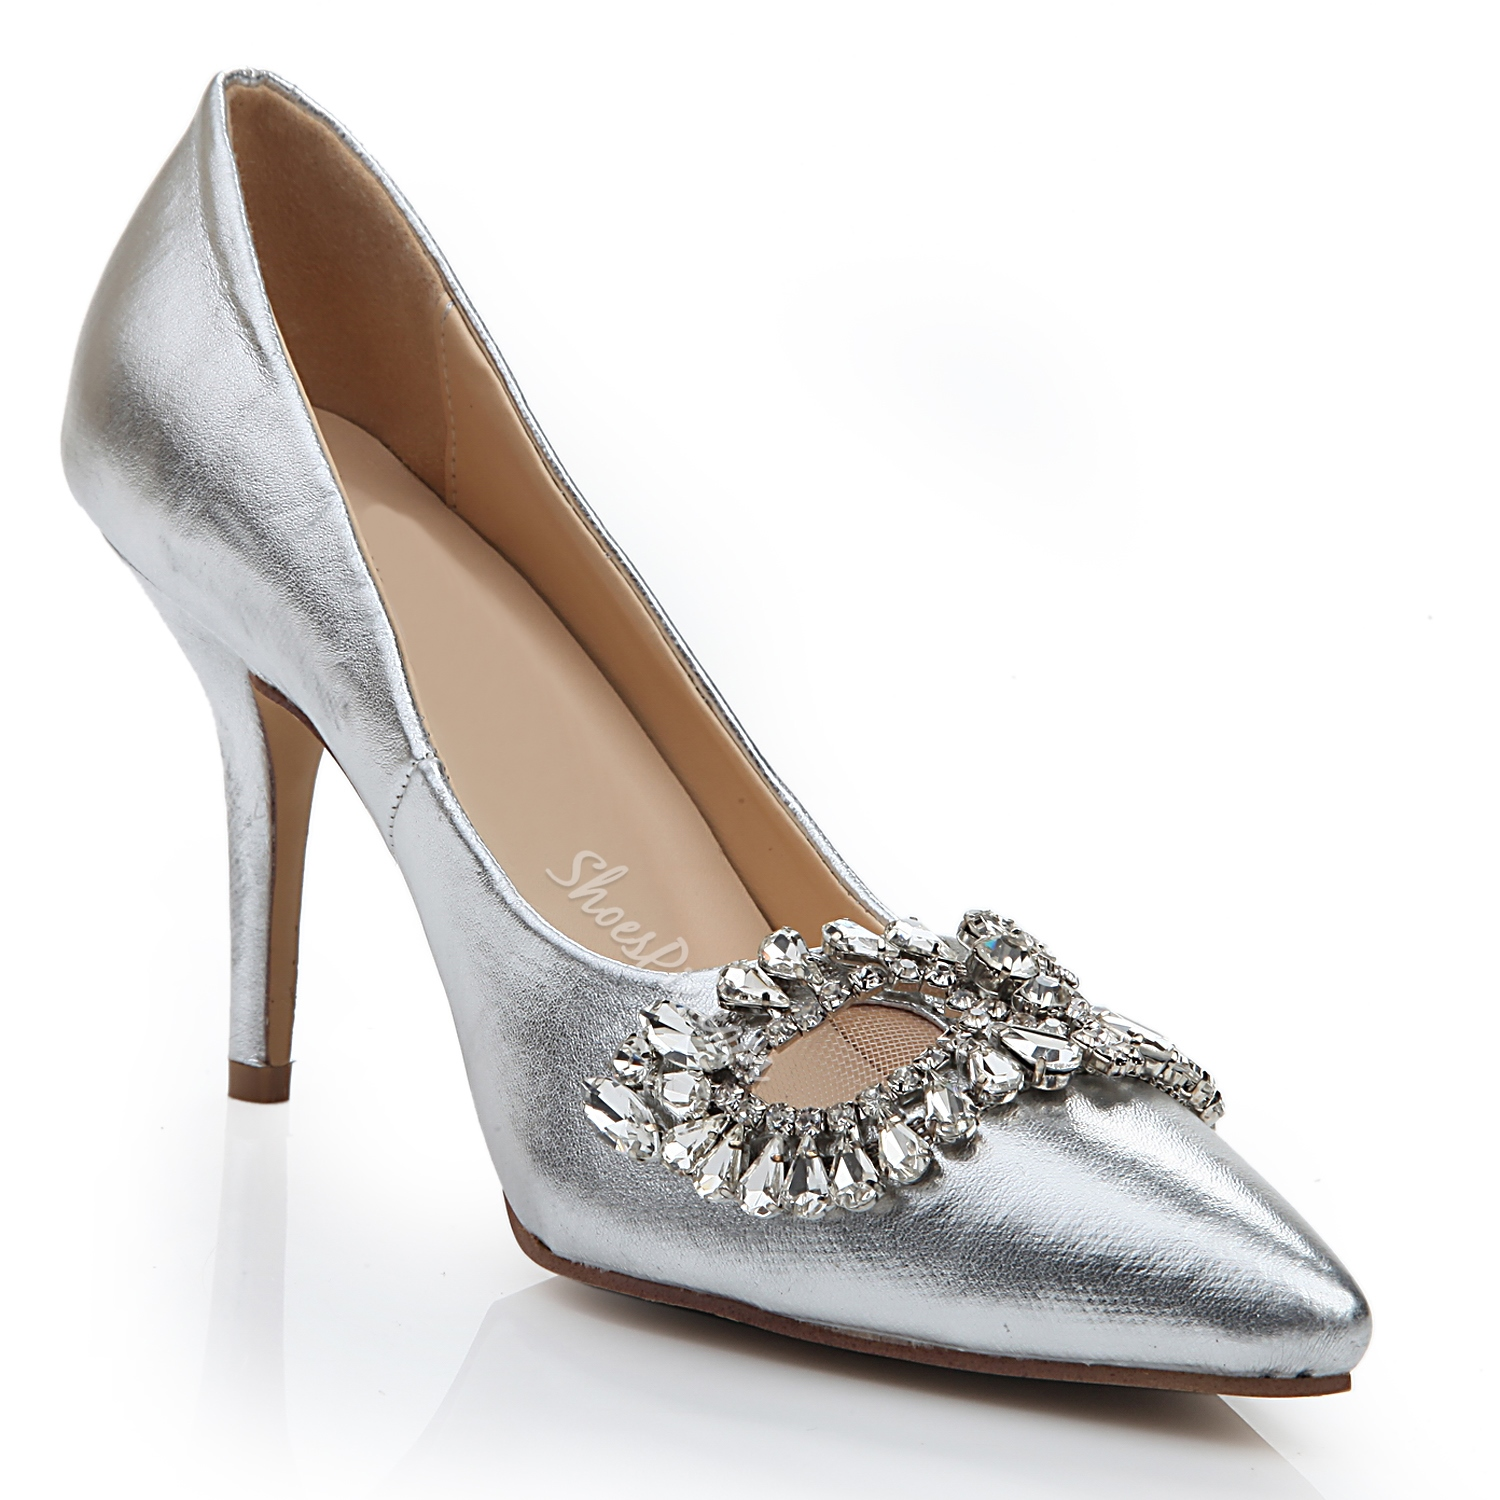 Save on Women's Silver Shoes. Trending price is based on prices over last 90 days. Foldable Flats ballet roll up shoes EXPANDABLE BAG plus sizes womens available. Glitter Women Ladies Low Wedge Heel Sandals Open Toe Shoes Summer Beach Shoes. AU $ to AU $ From China. Was: Previous price AU $ Free .